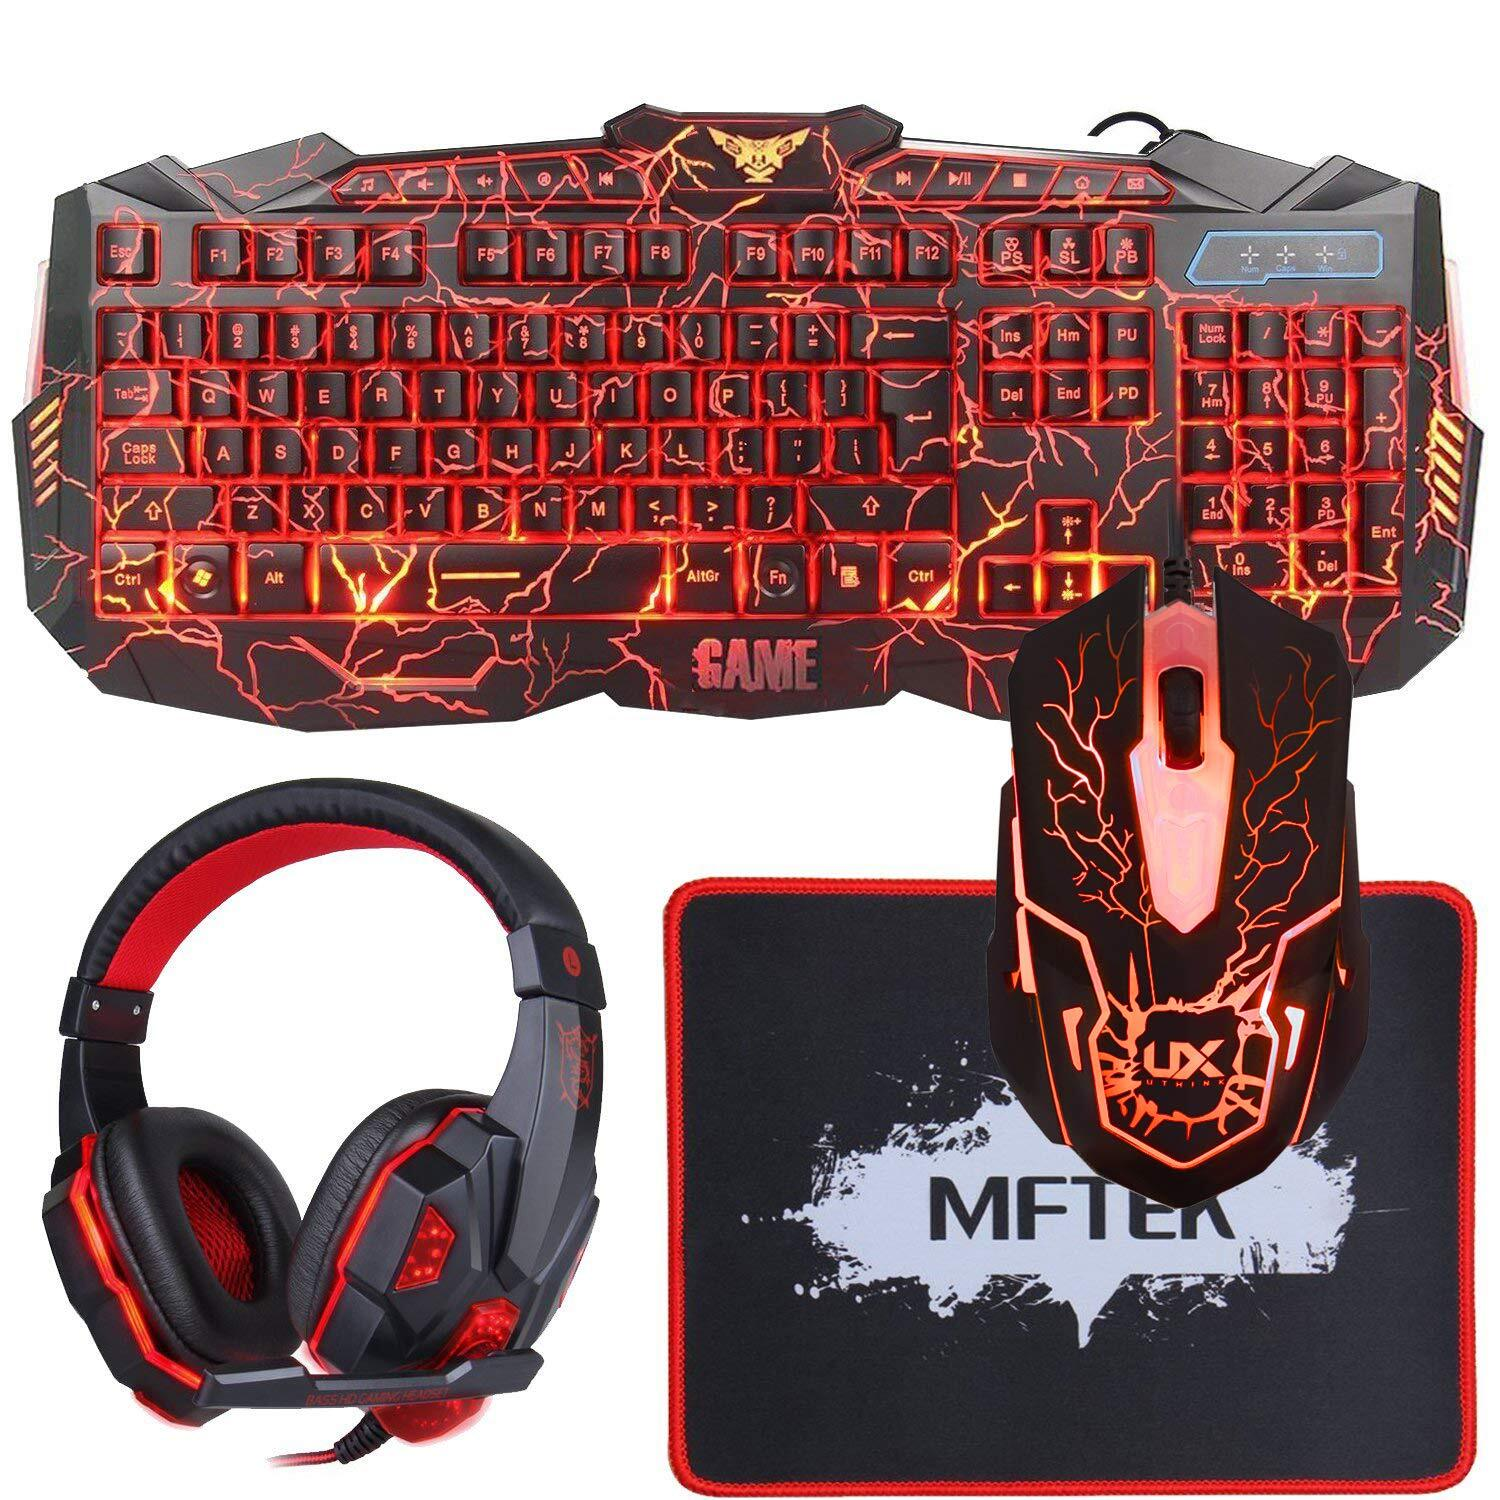 BlueFinger RGB Gaming Keyboard and Mouse Combo